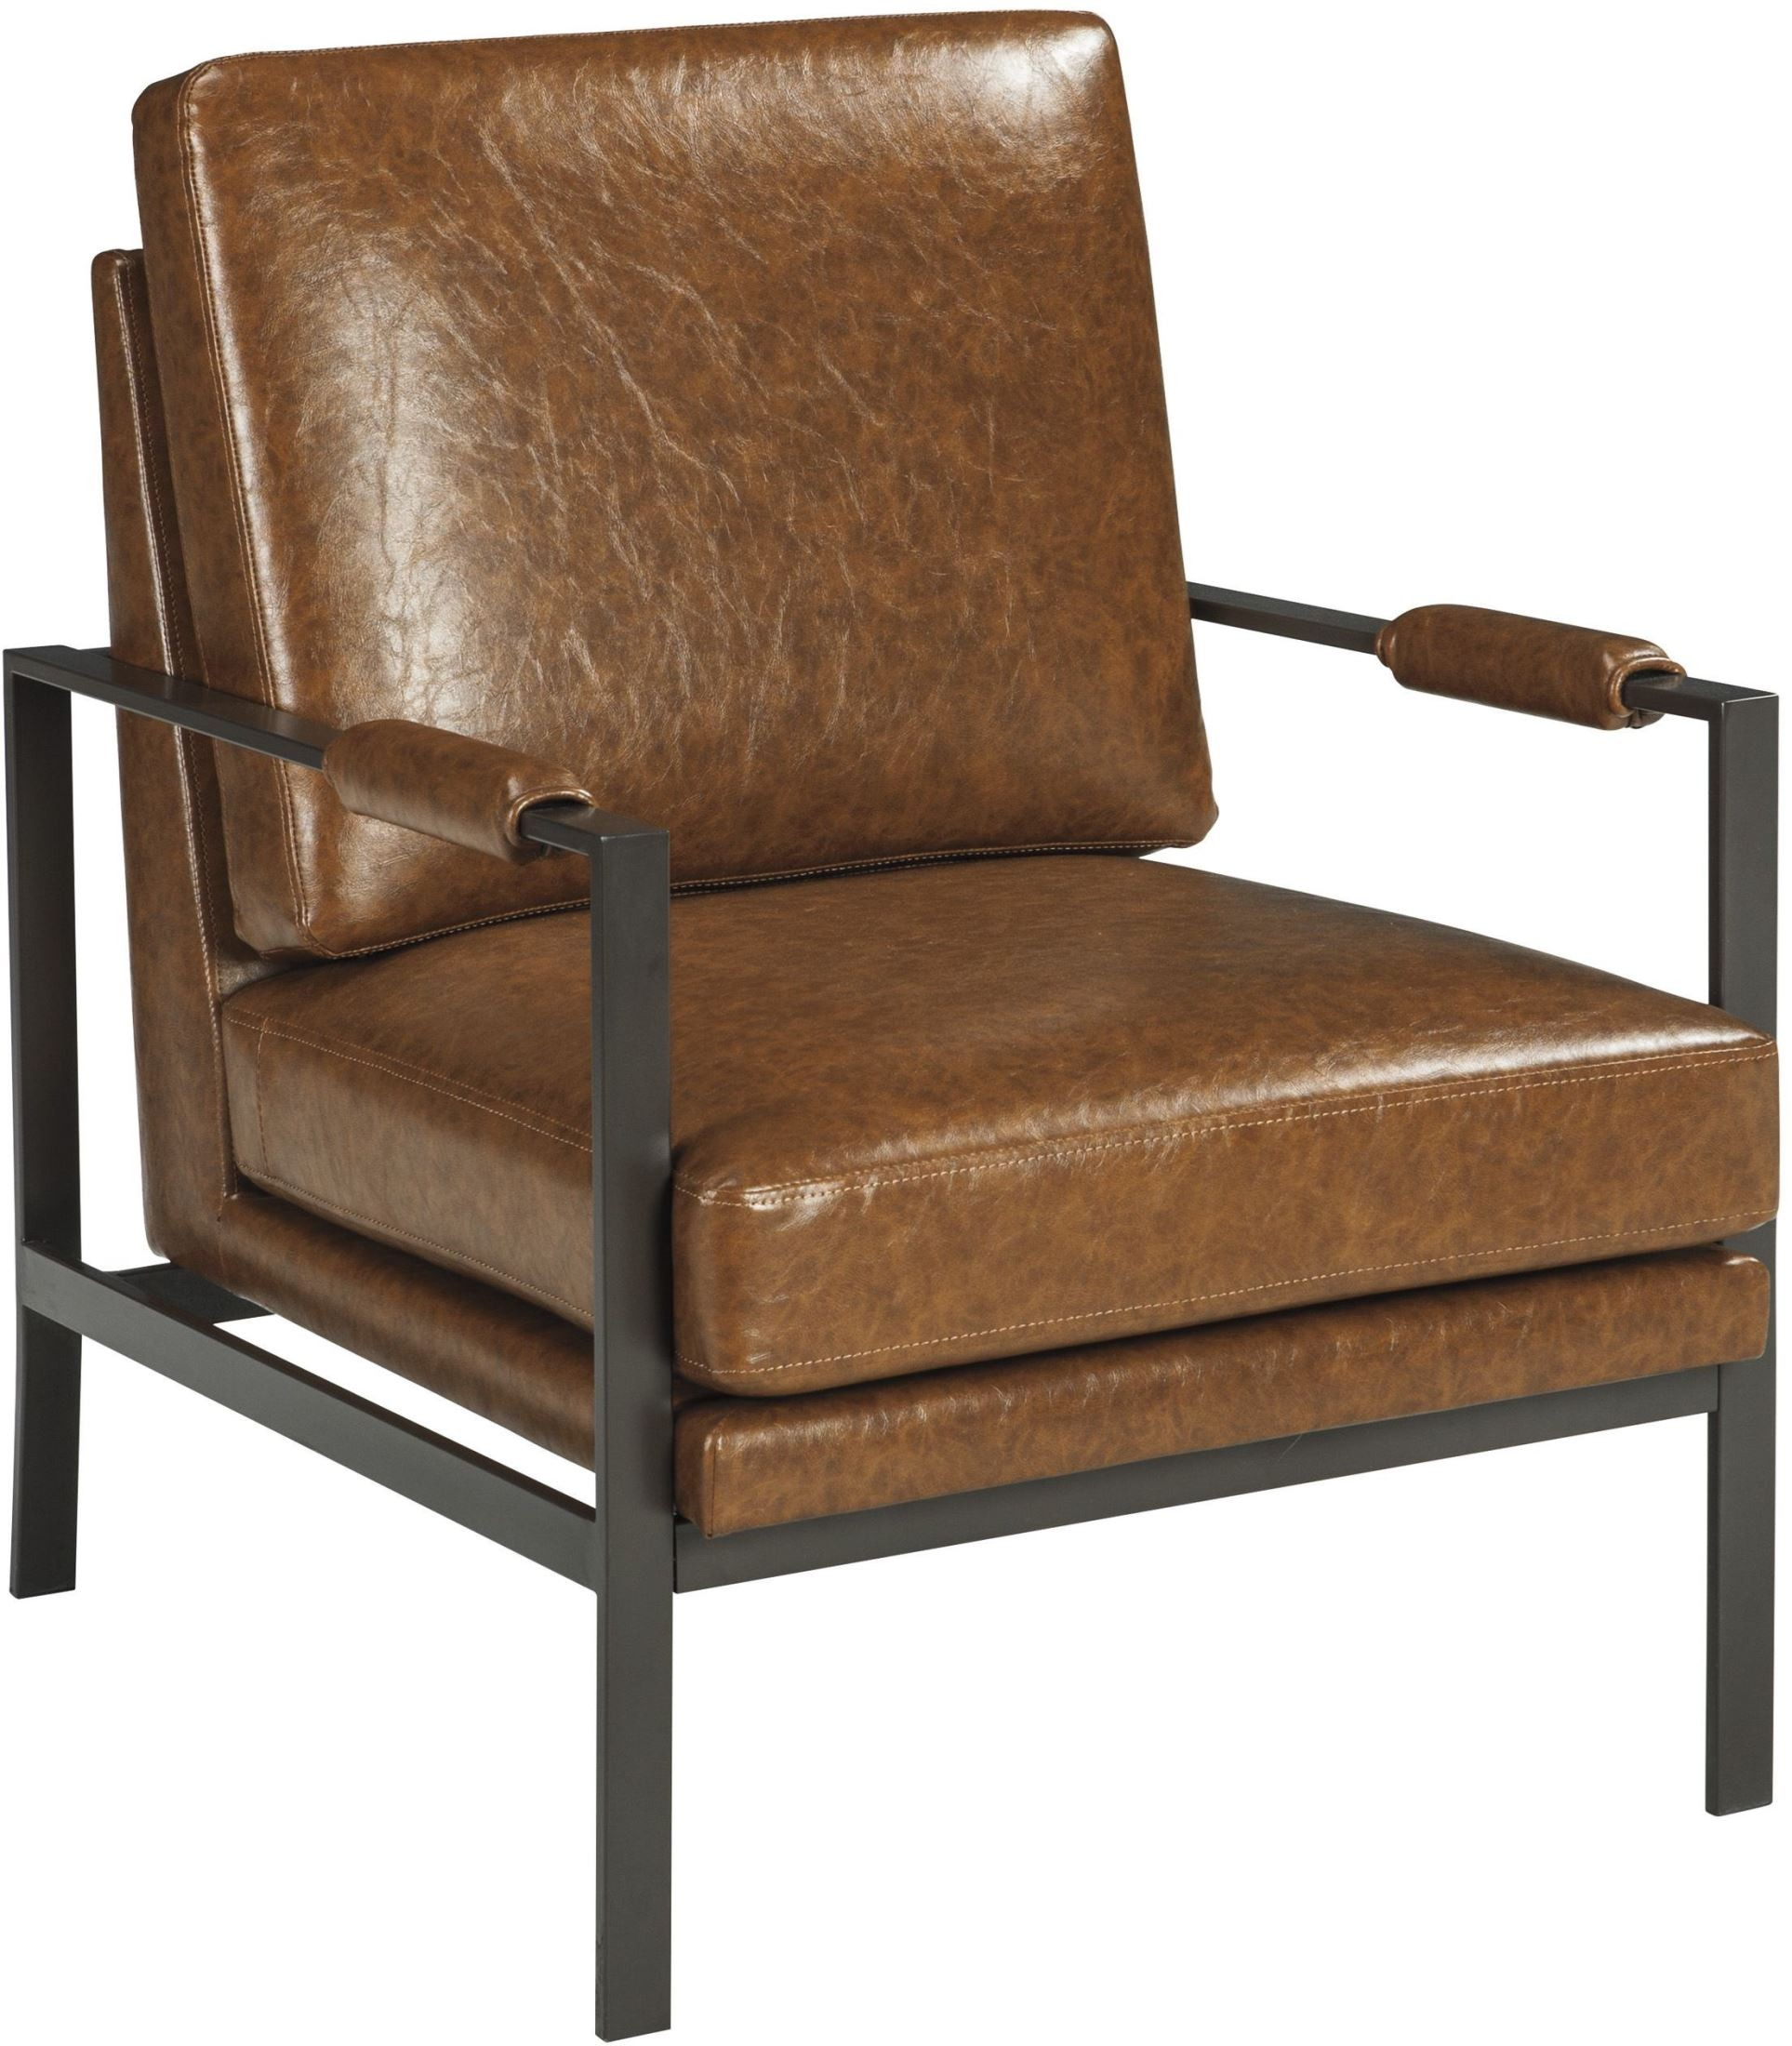 brown accent chairs white spandex chair covers amazon peacemaker from ashley coleman furniture 2324568